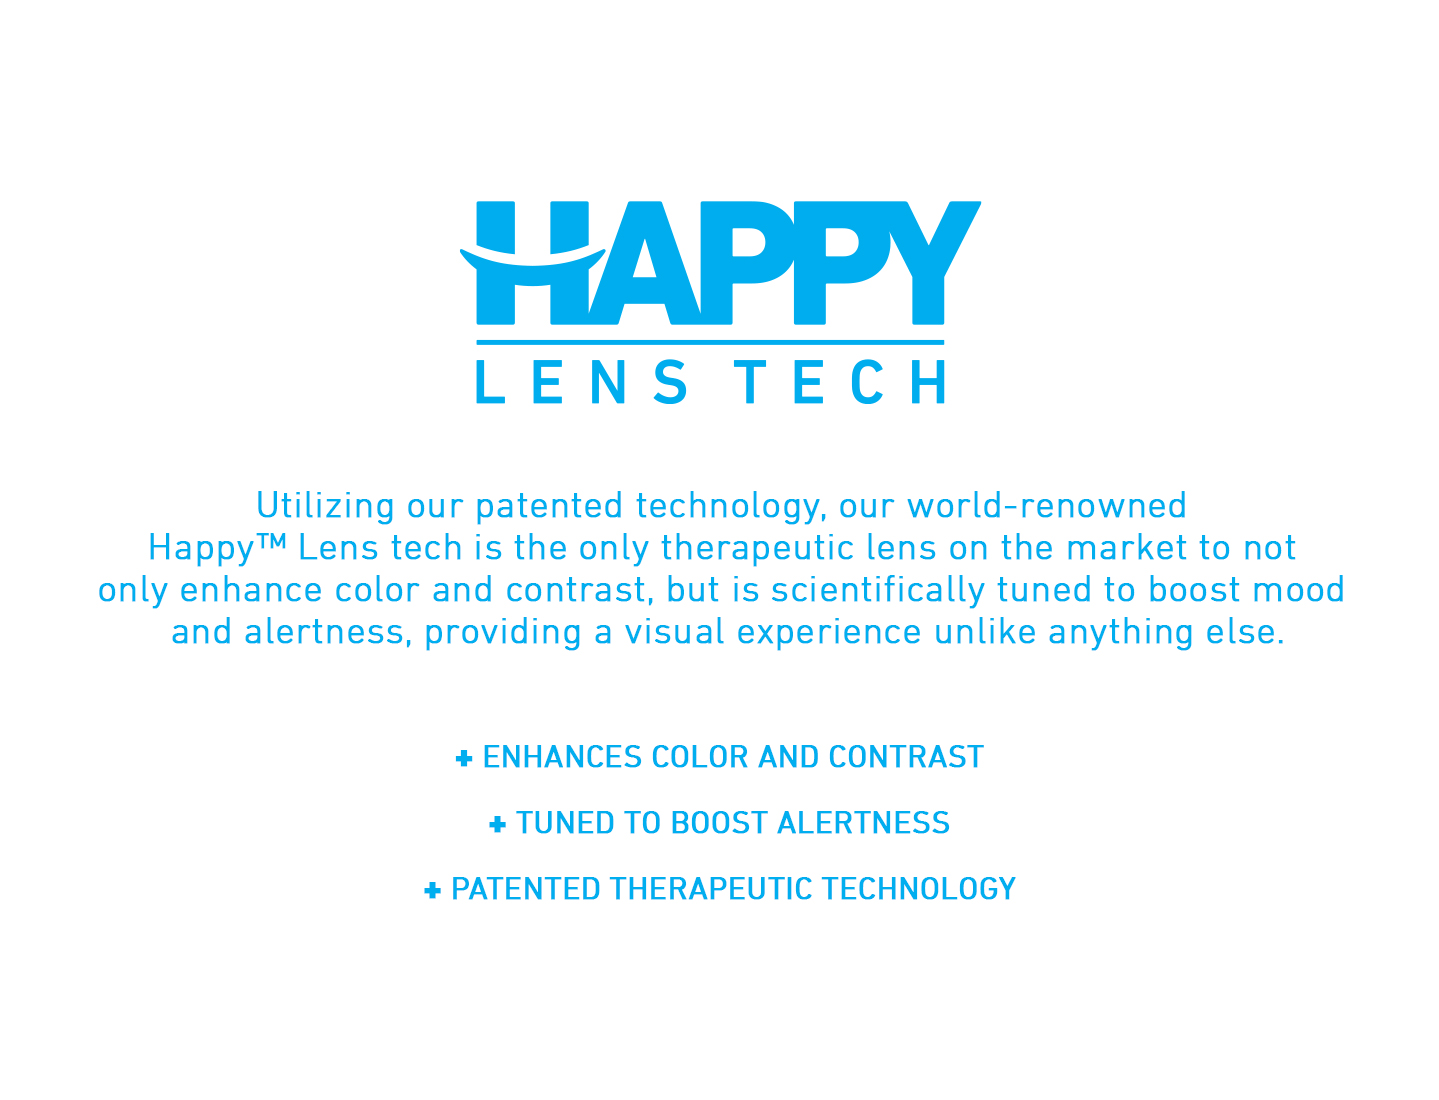 HAPPY LENS TECH